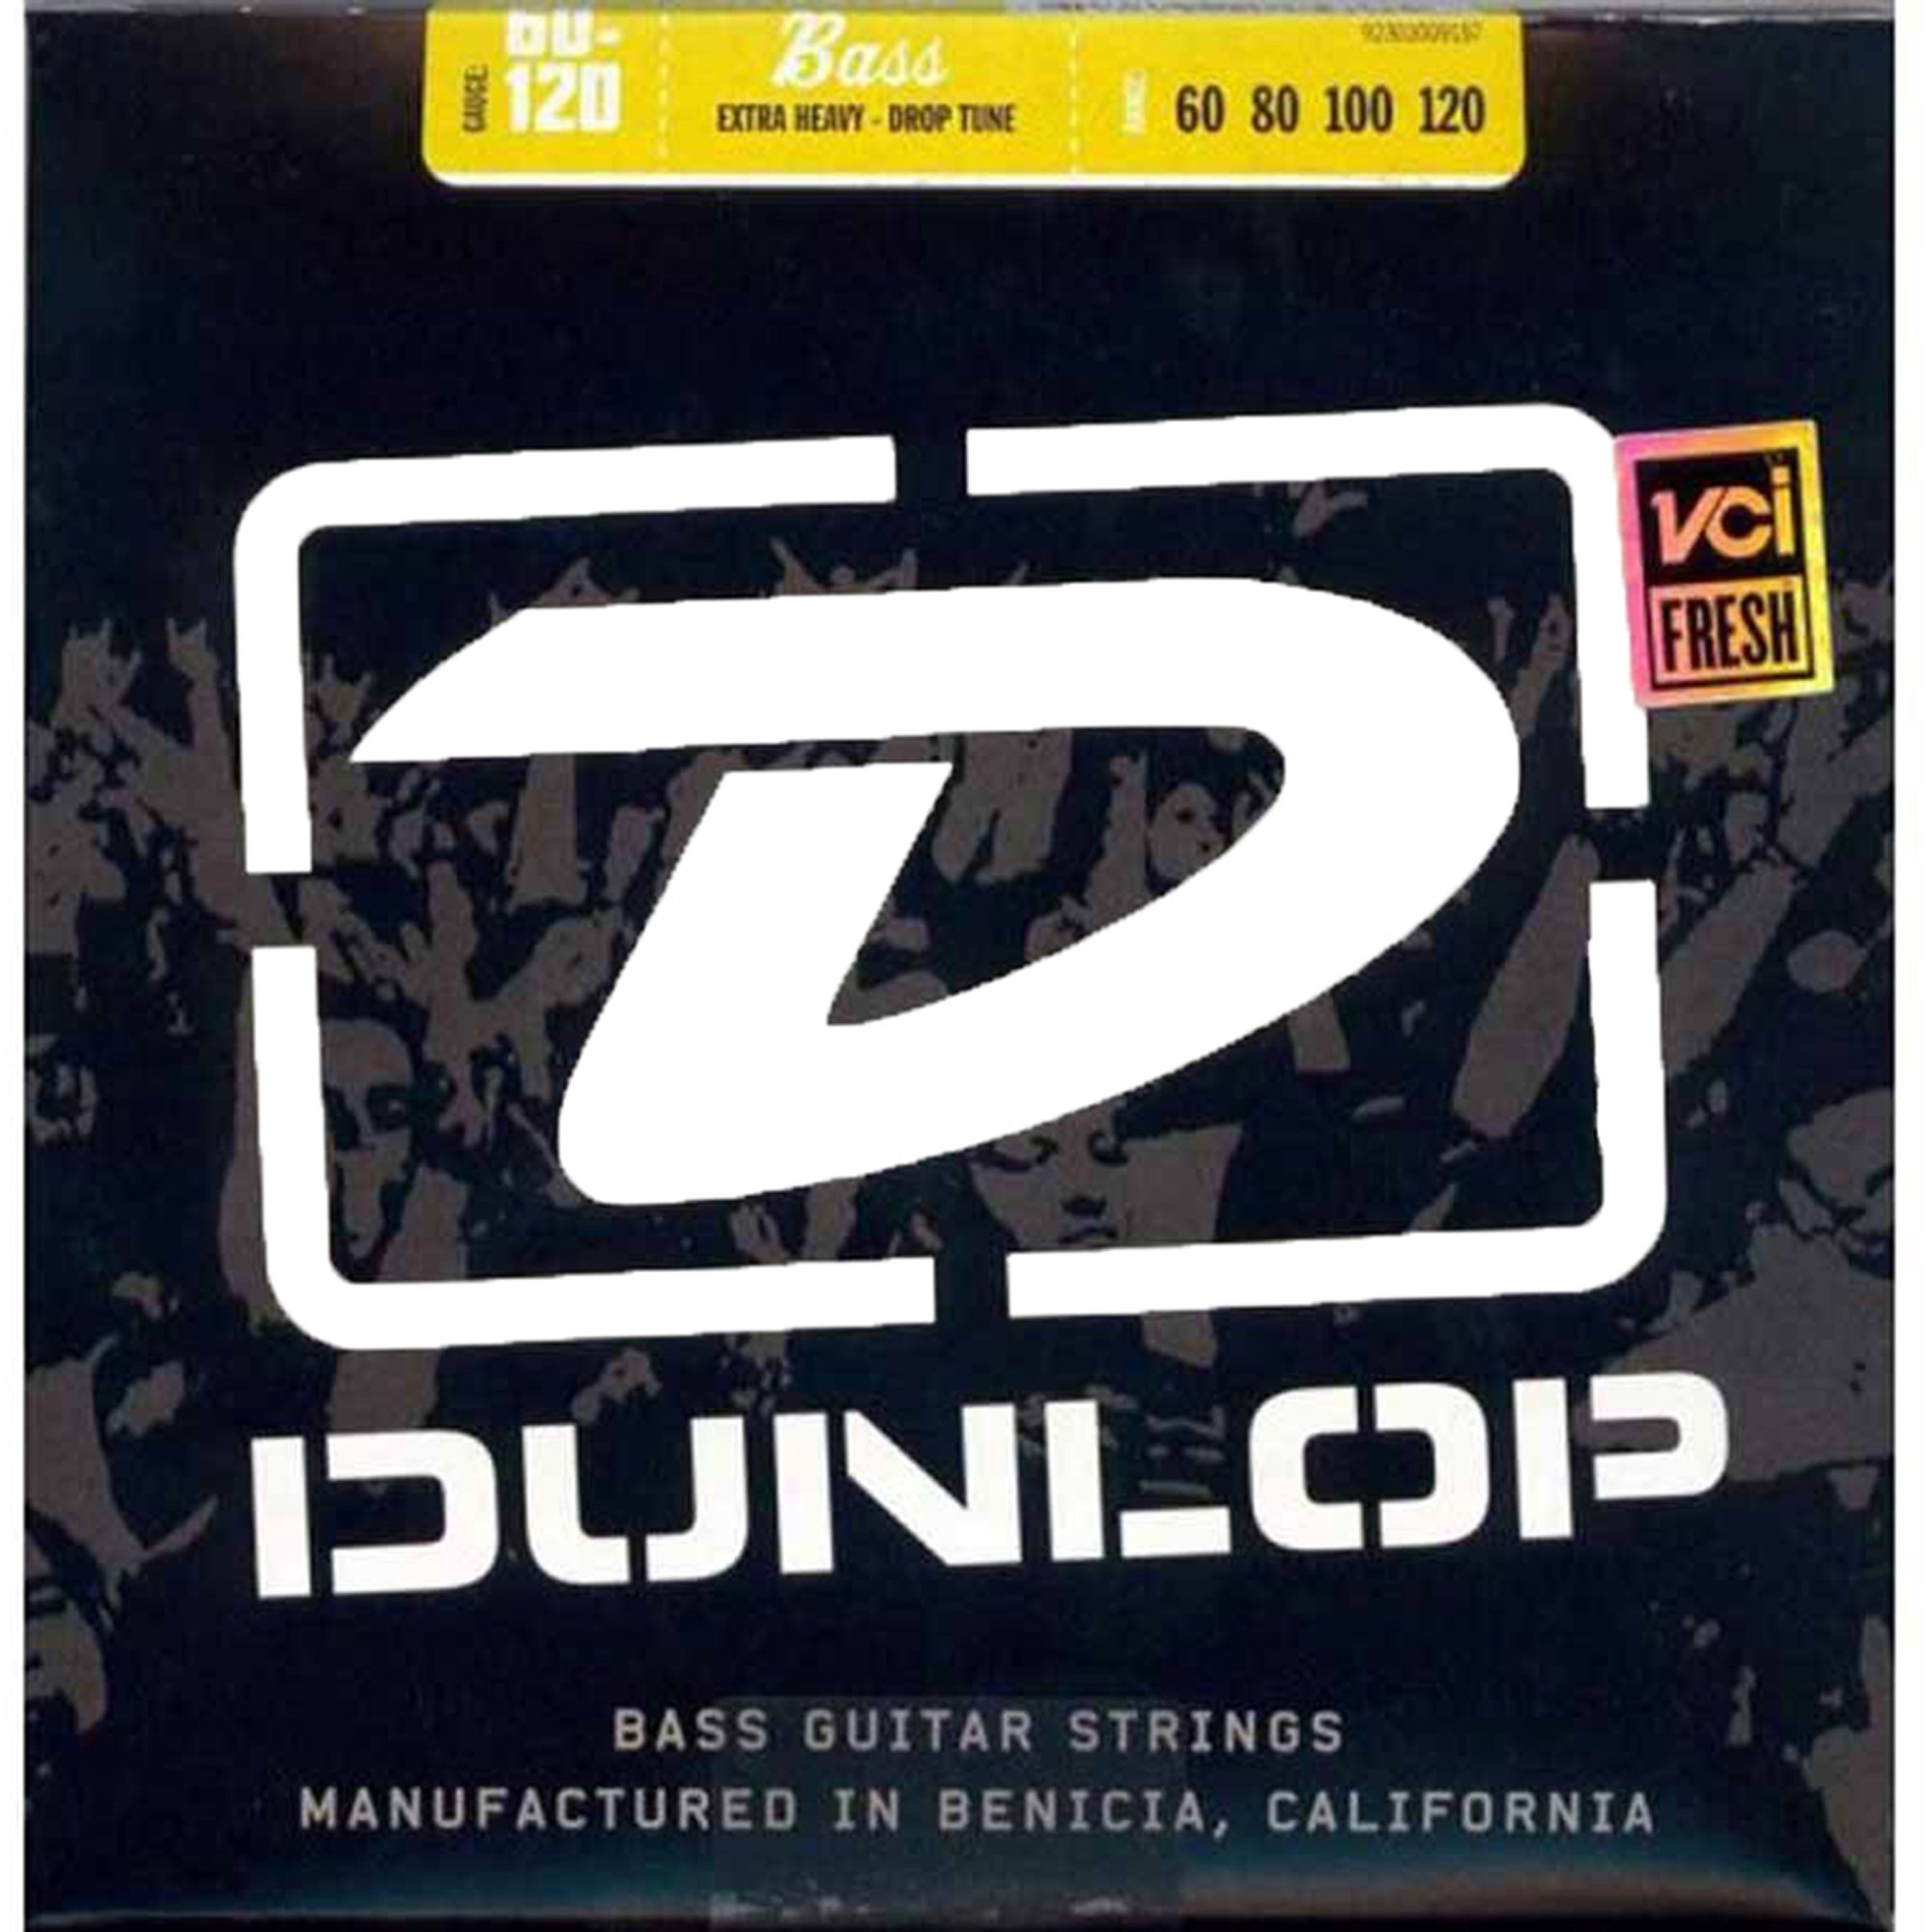 Dunlop DBN60120 Nickel Extra Heavy 4 String Stainless Steel Bass Guitar Strings .60-.120 by Dunlop